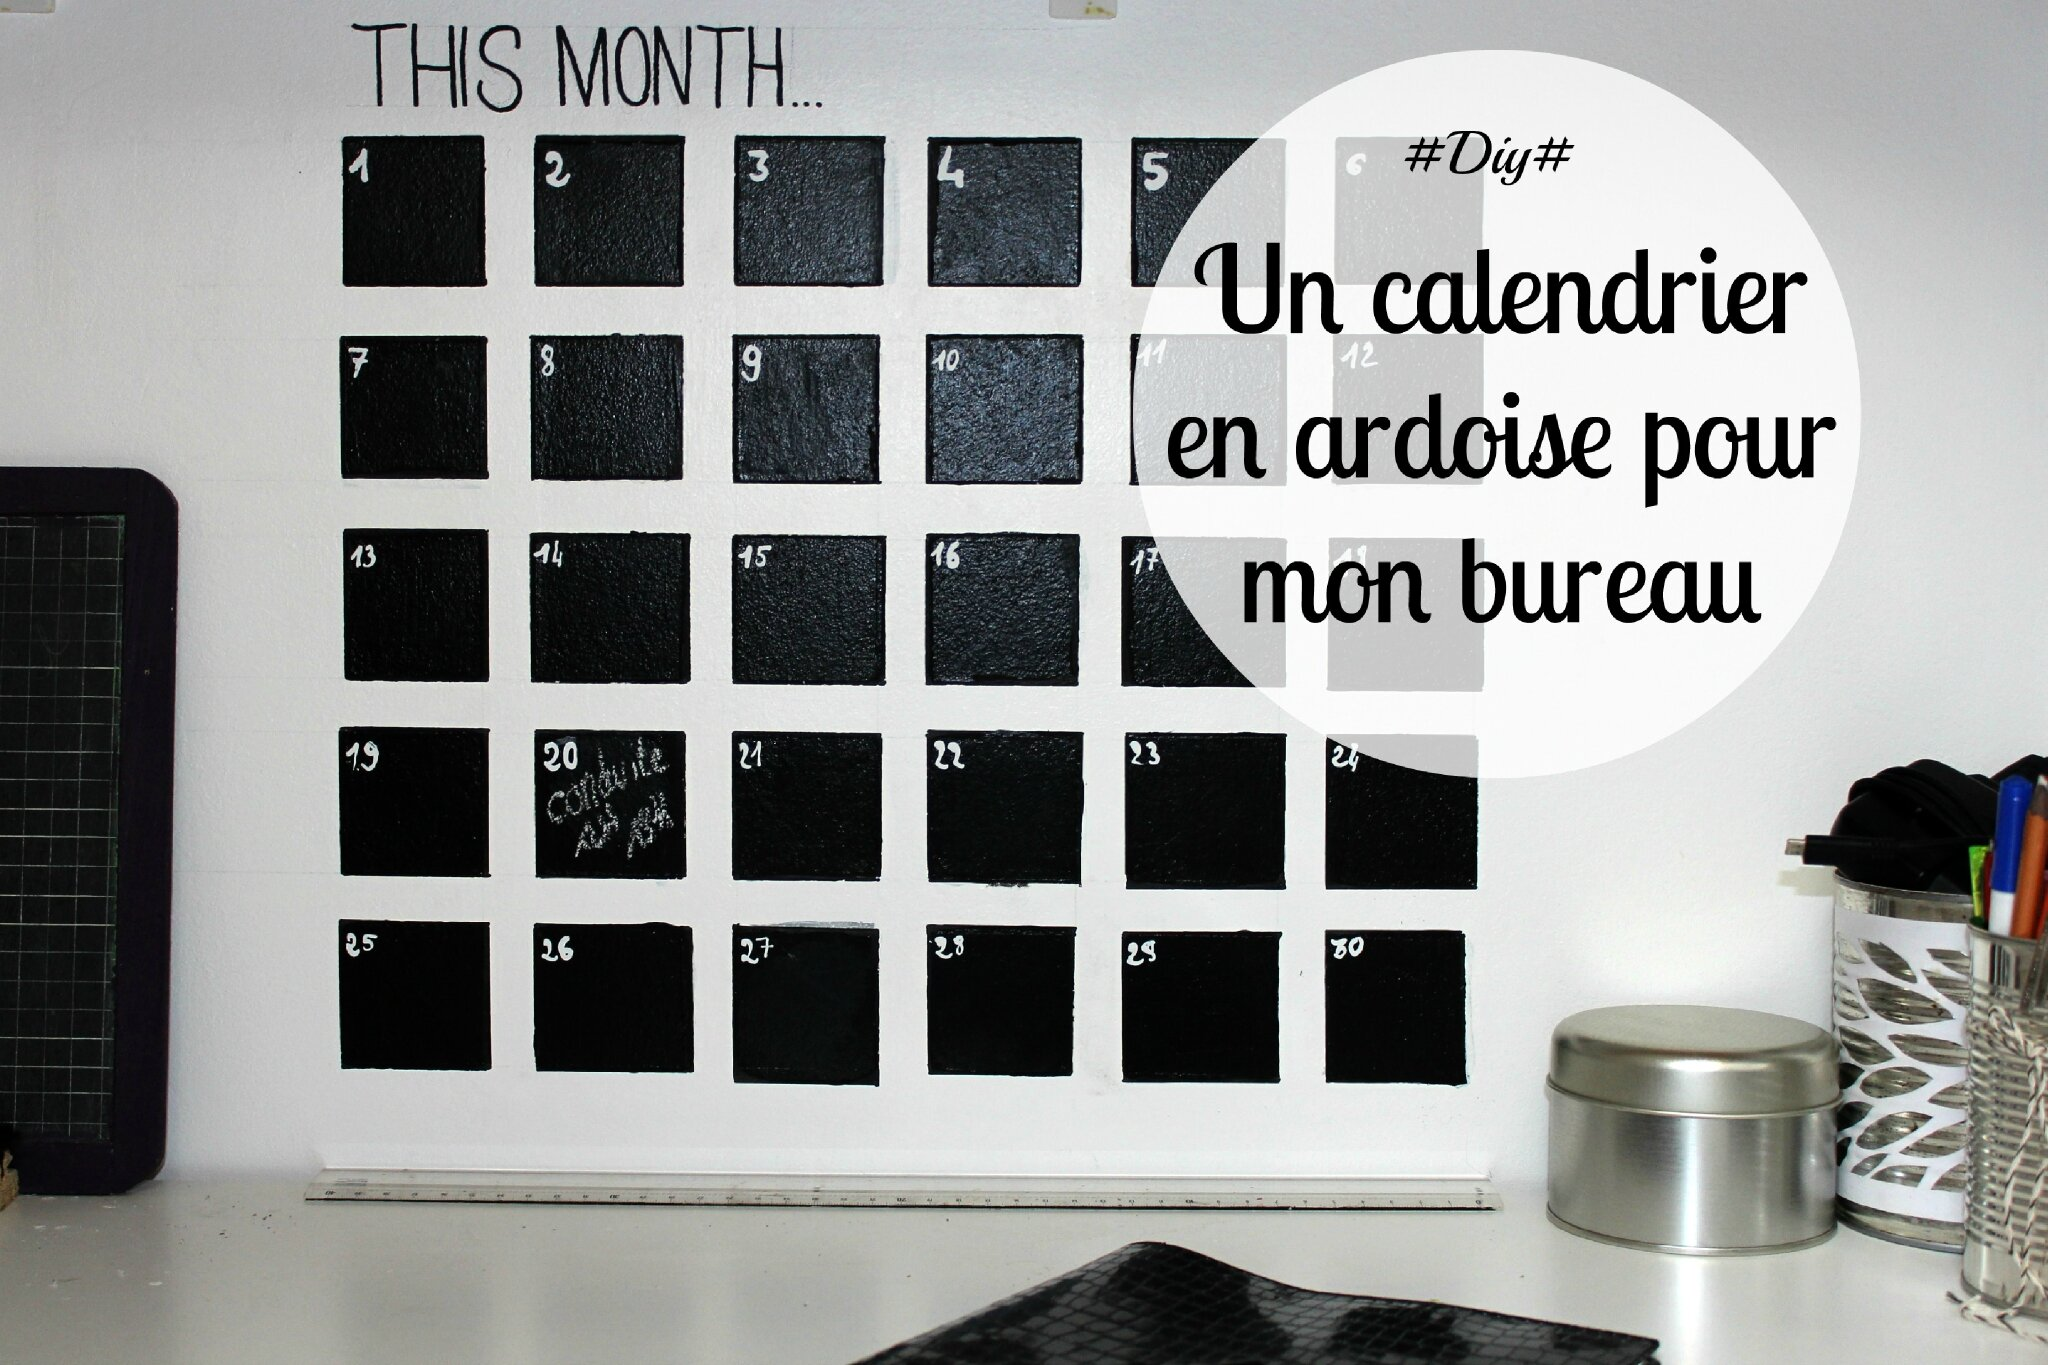 ch 6 un calendrier en ardoise pour mon bureau blog. Black Bedroom Furniture Sets. Home Design Ideas